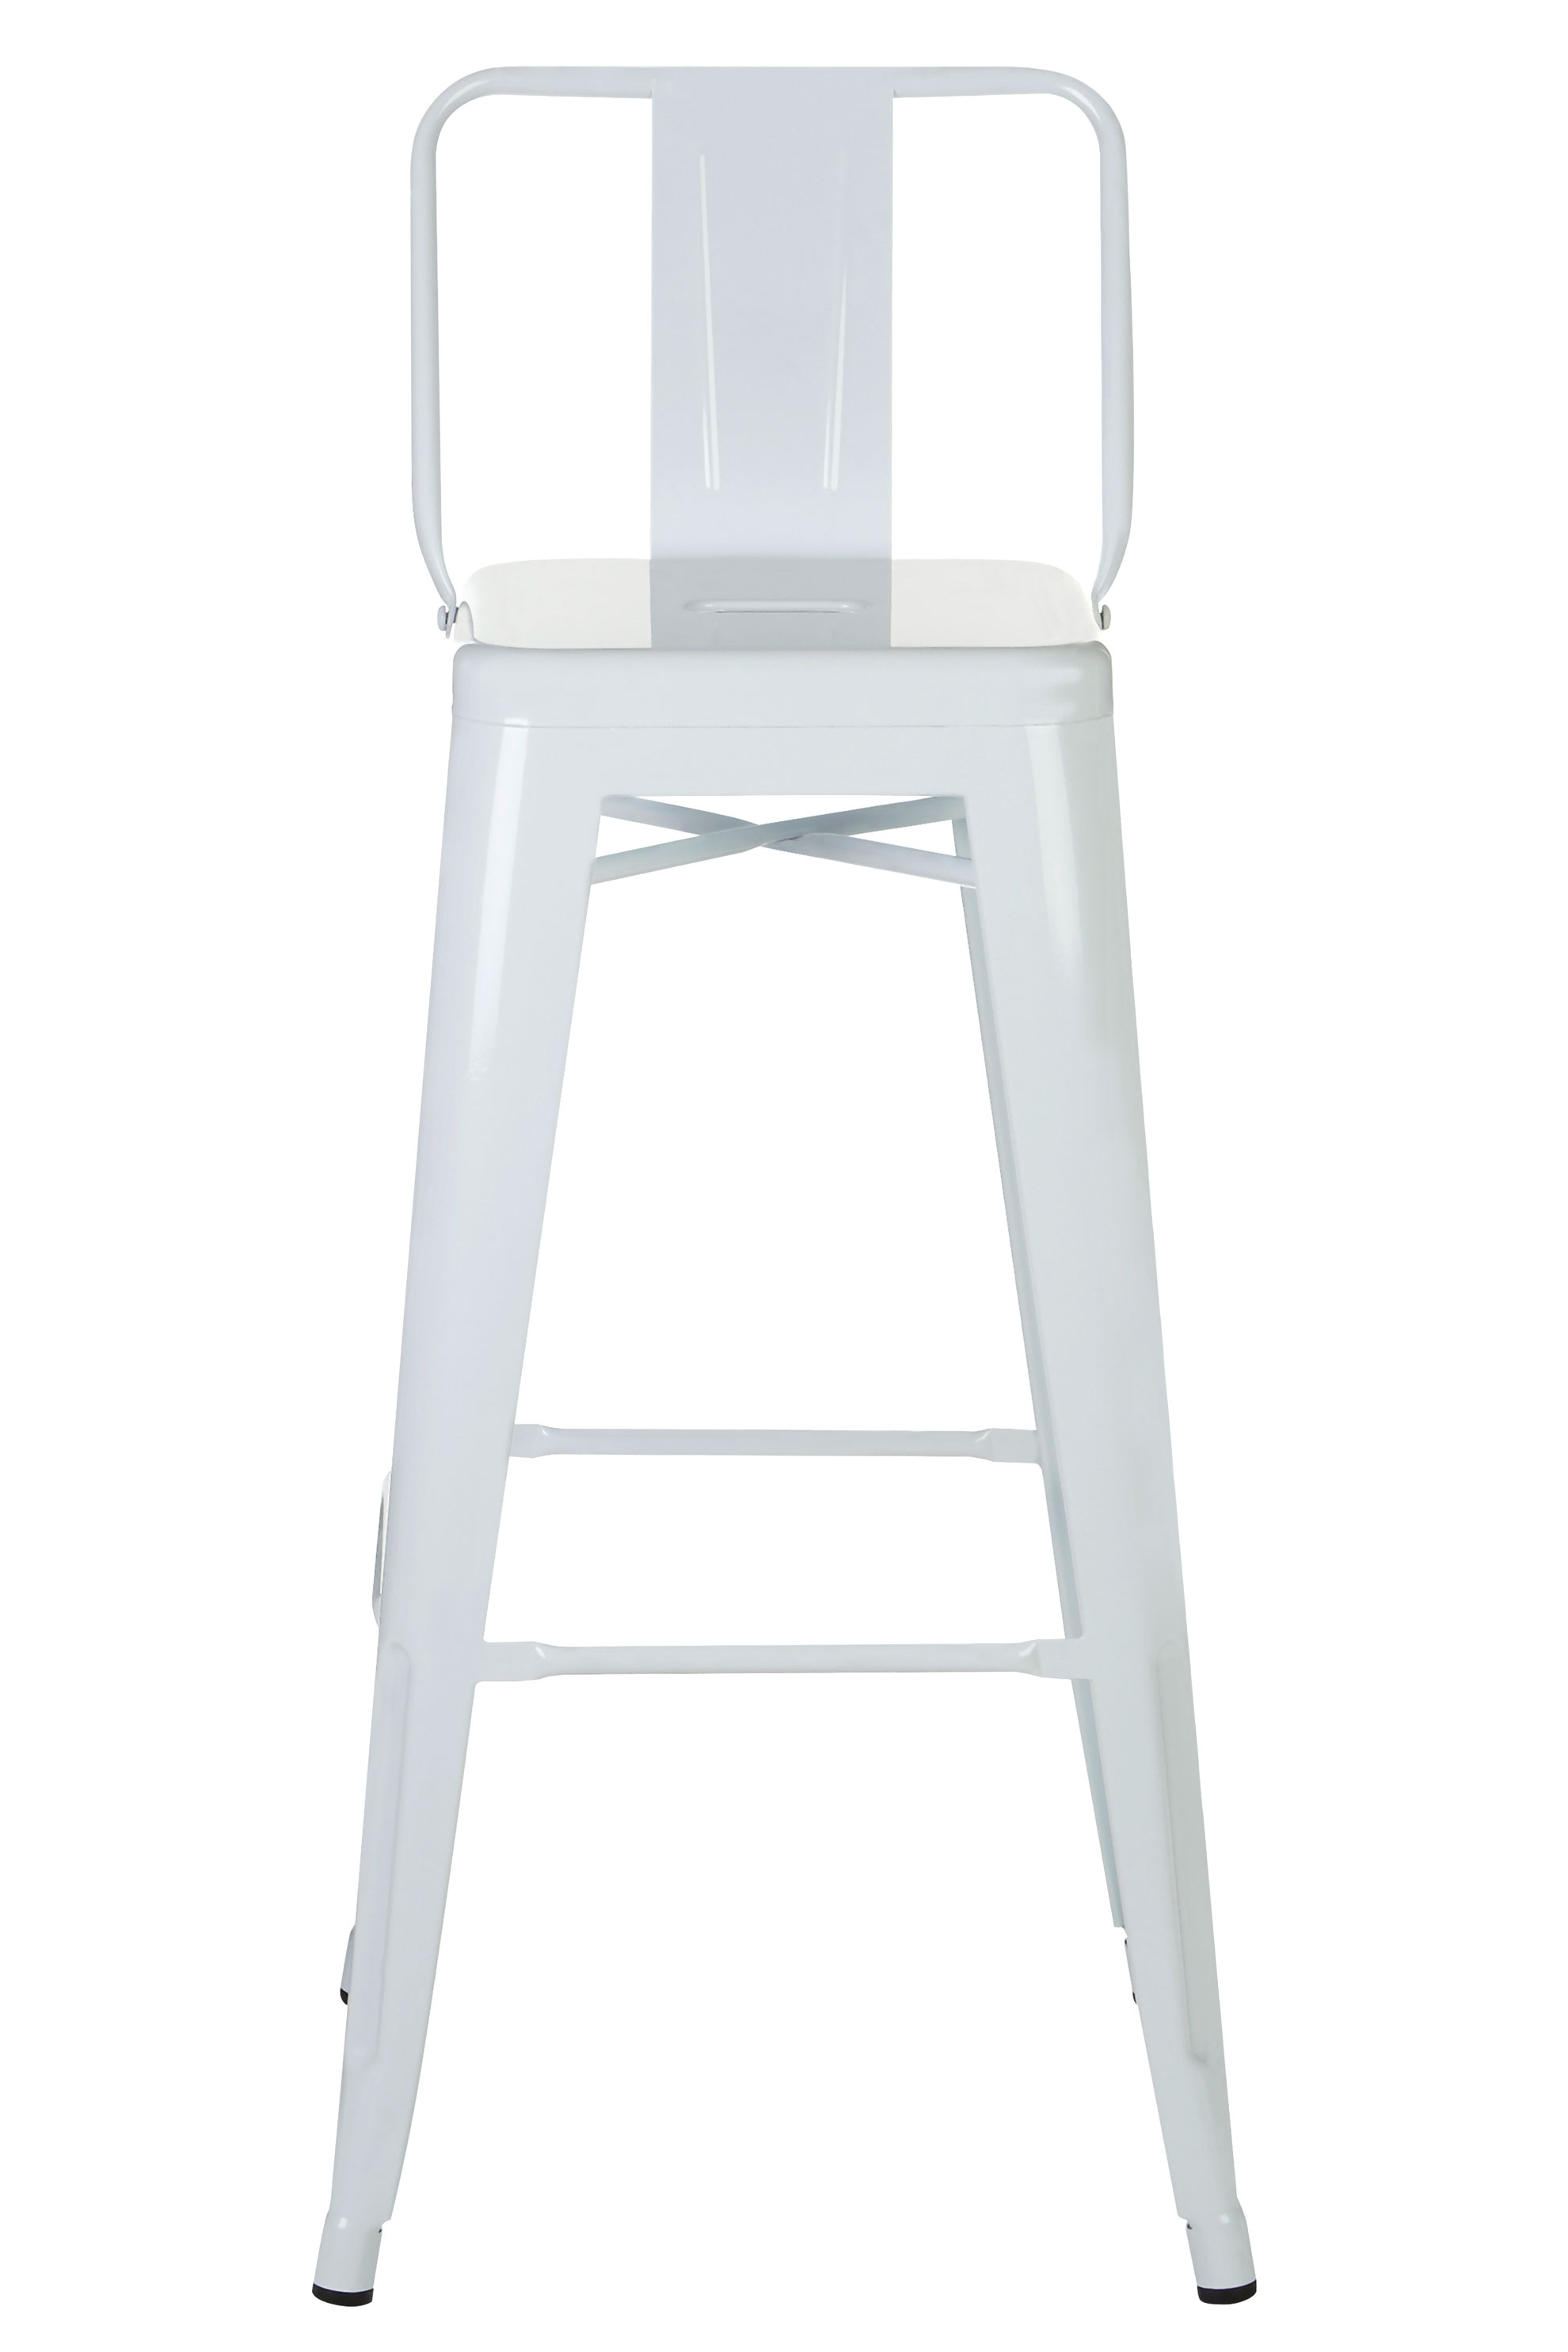 stylish high chair baby chairs under 50 metal industrial bar stool backed white